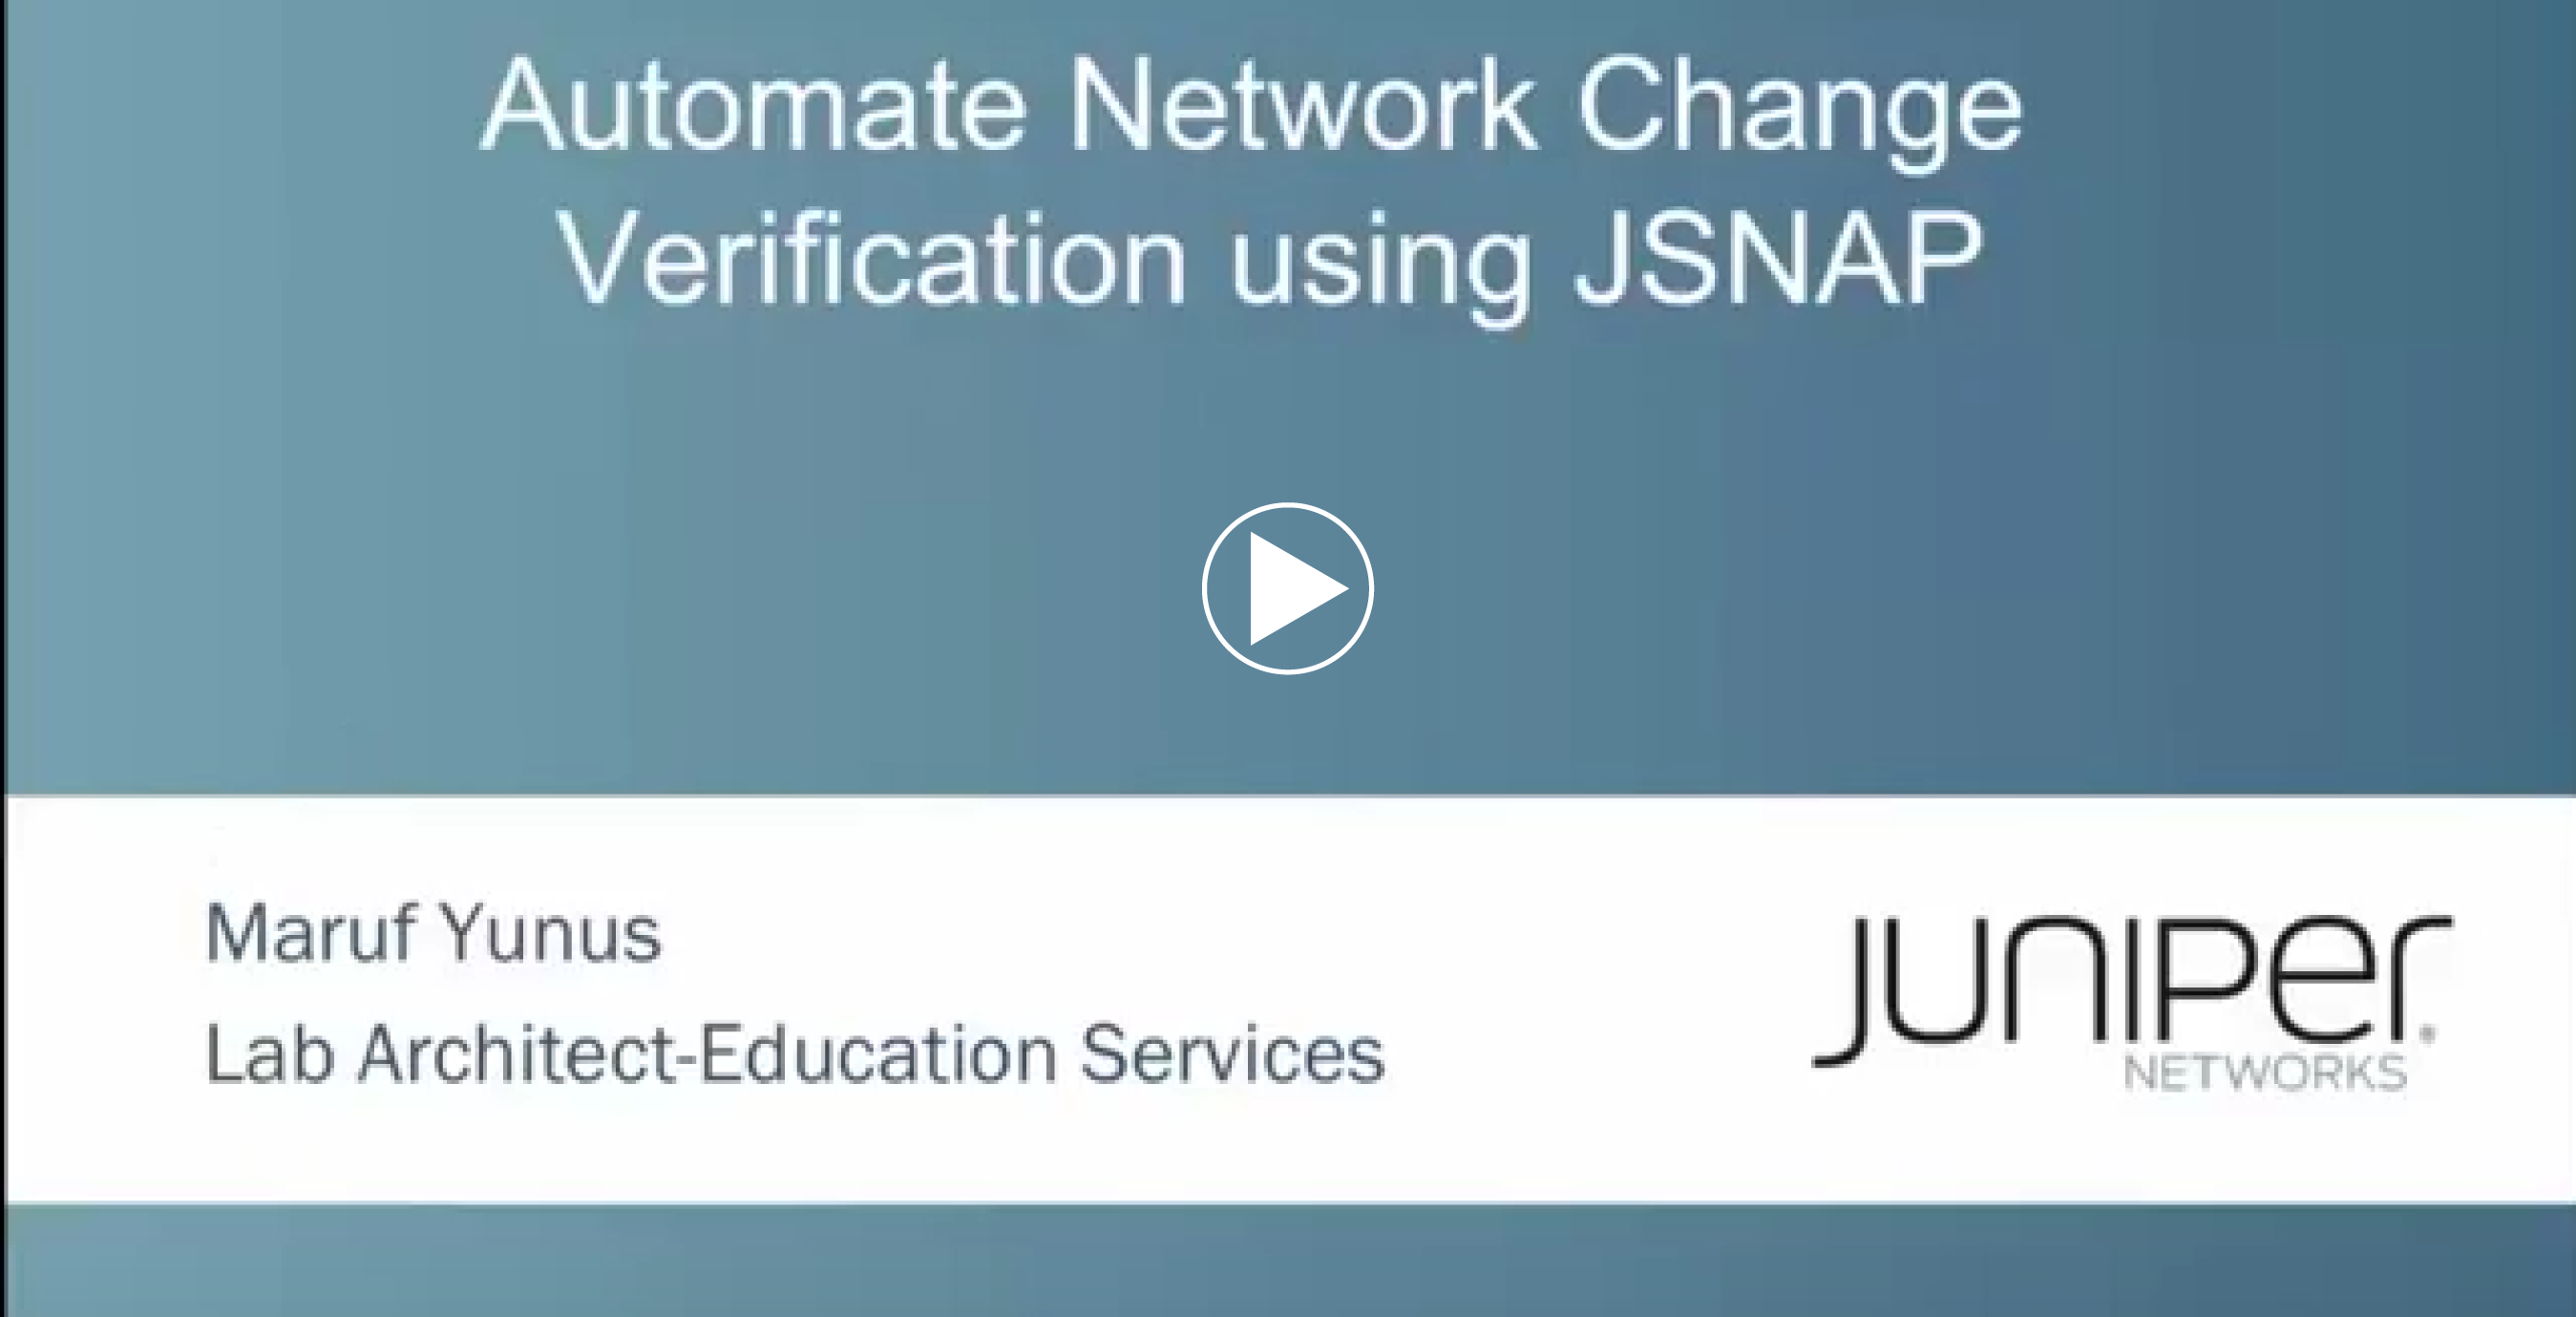 Network Design And Architecture Center Enterprise Campus Branch Structured Wiring Networking Systems Install Minneapolis Video Automate Change Verification Using Junos Snapshot Administrator